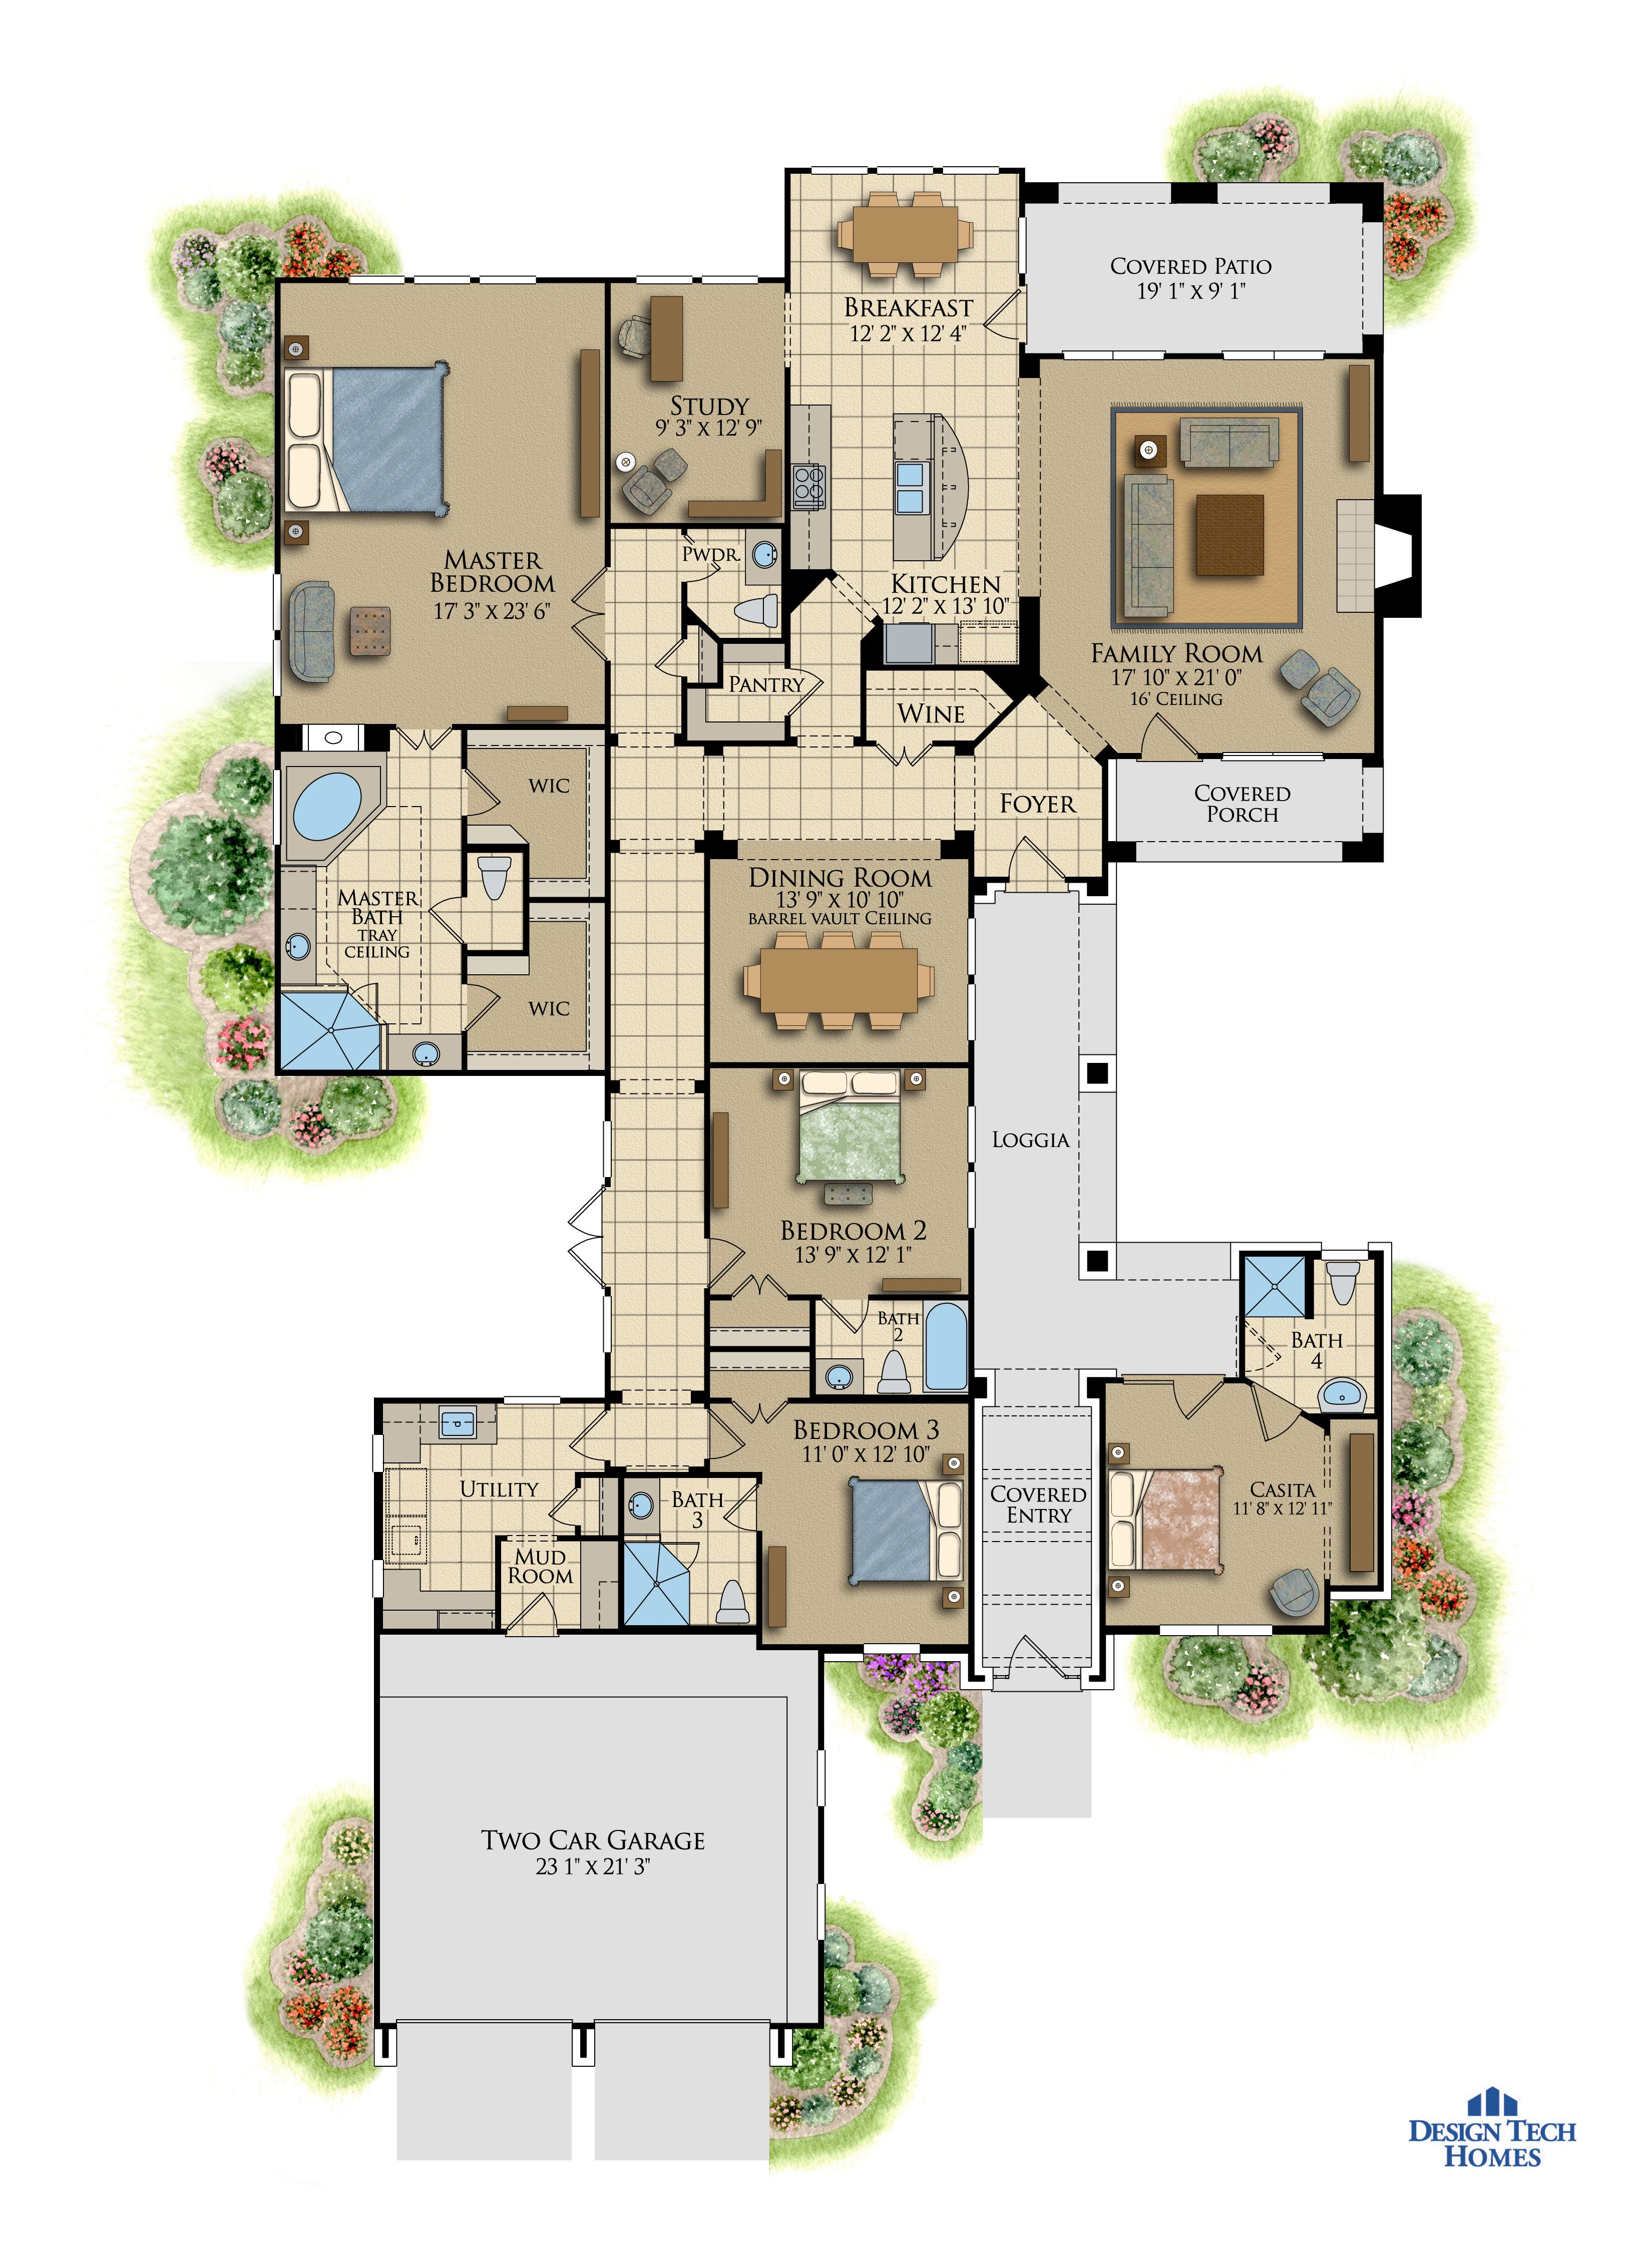 Design Tech Homes - 4/4.5, attached 2 car garage and mother-in-law ...